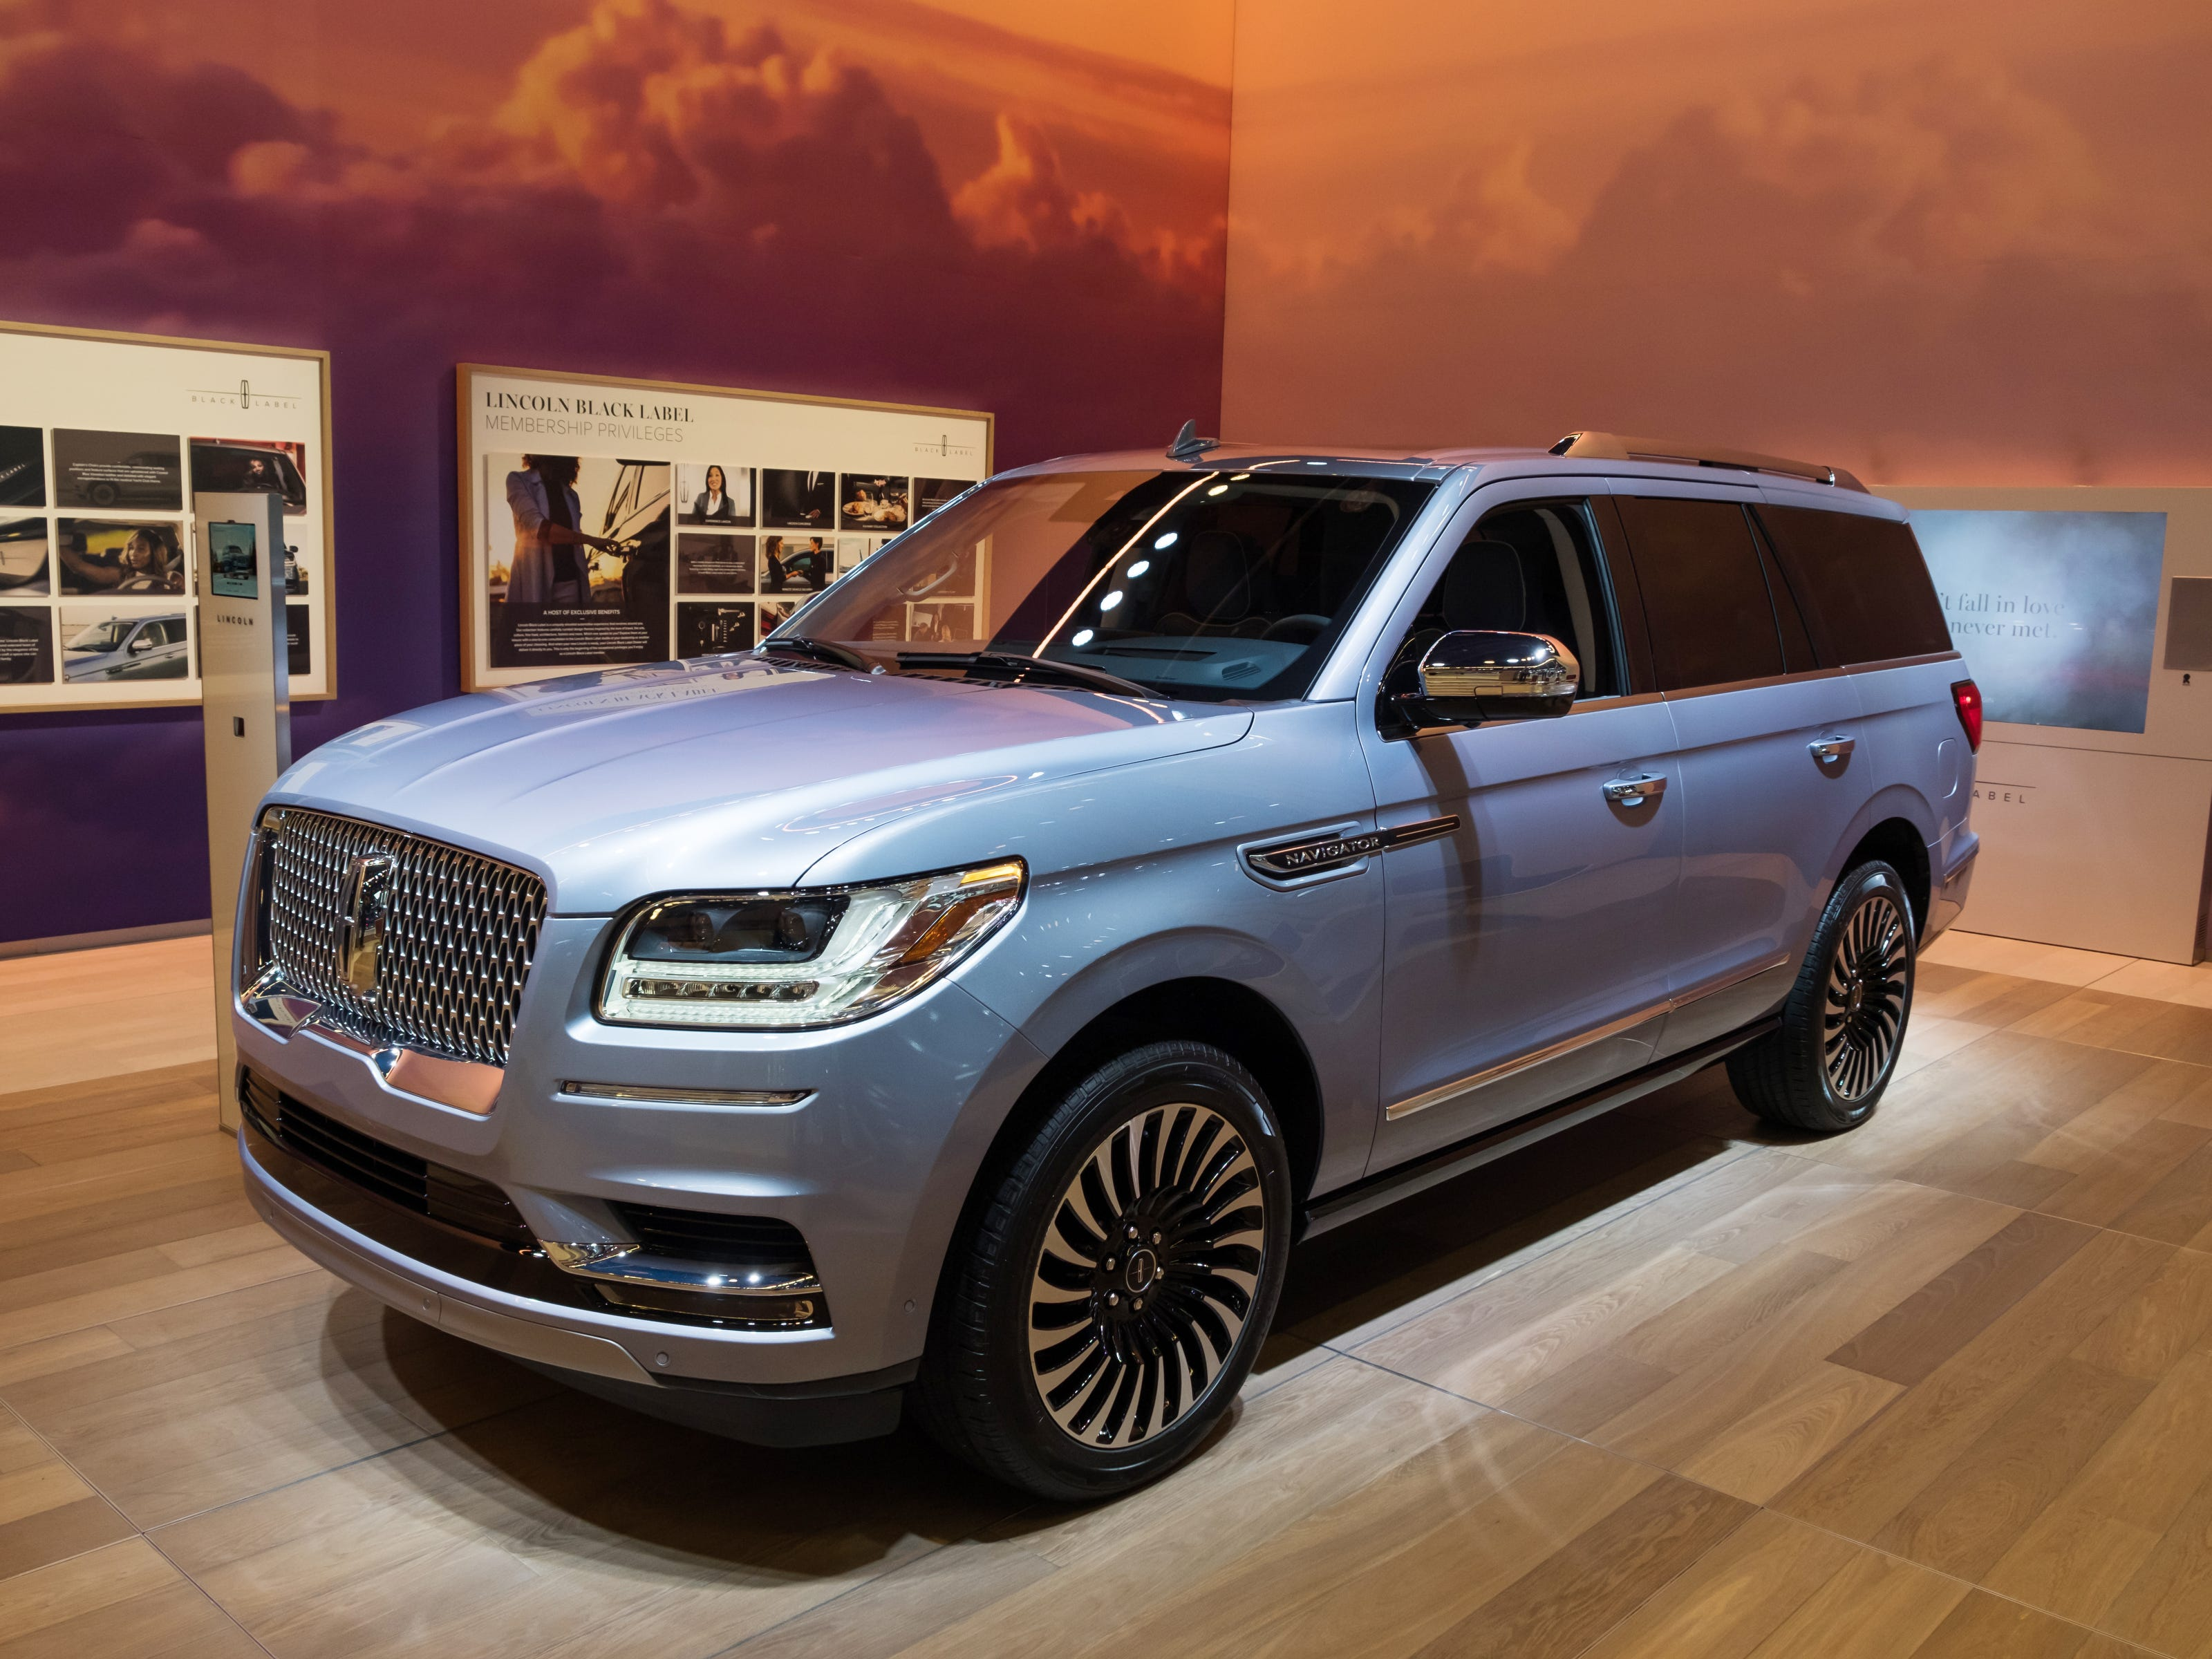 A 2019 Lincoln Navigator sits on display during the 2019 North American International Auto Show held at Cobo Center in downtown Detroit on Tuesday, Jan. 15, 2019.  (Via OlyDrop)